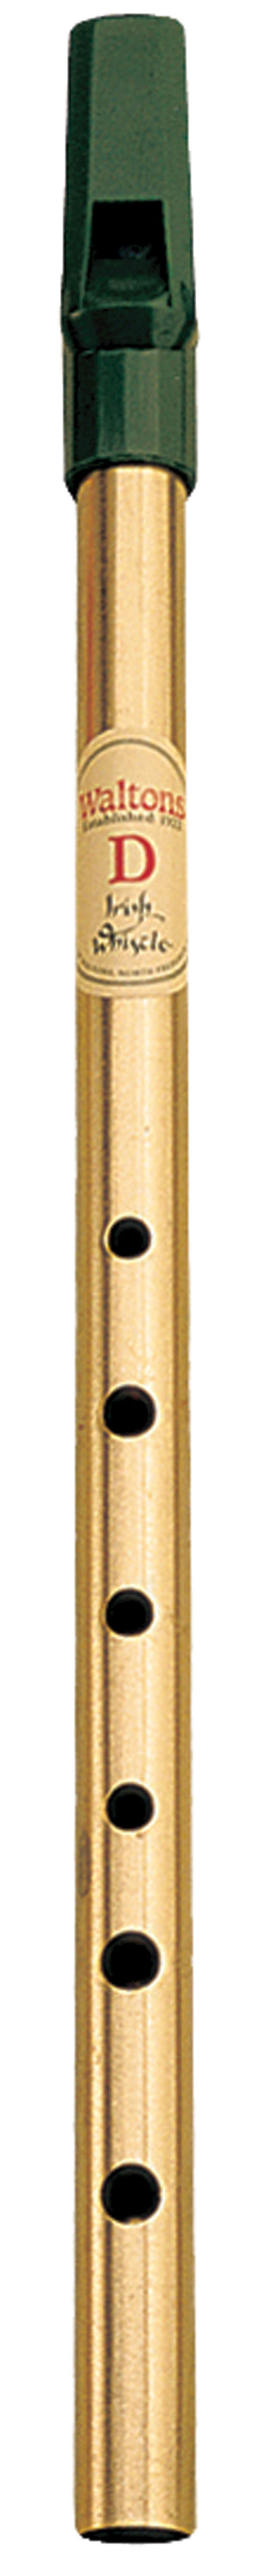 Product Cover for D Irish Whistle